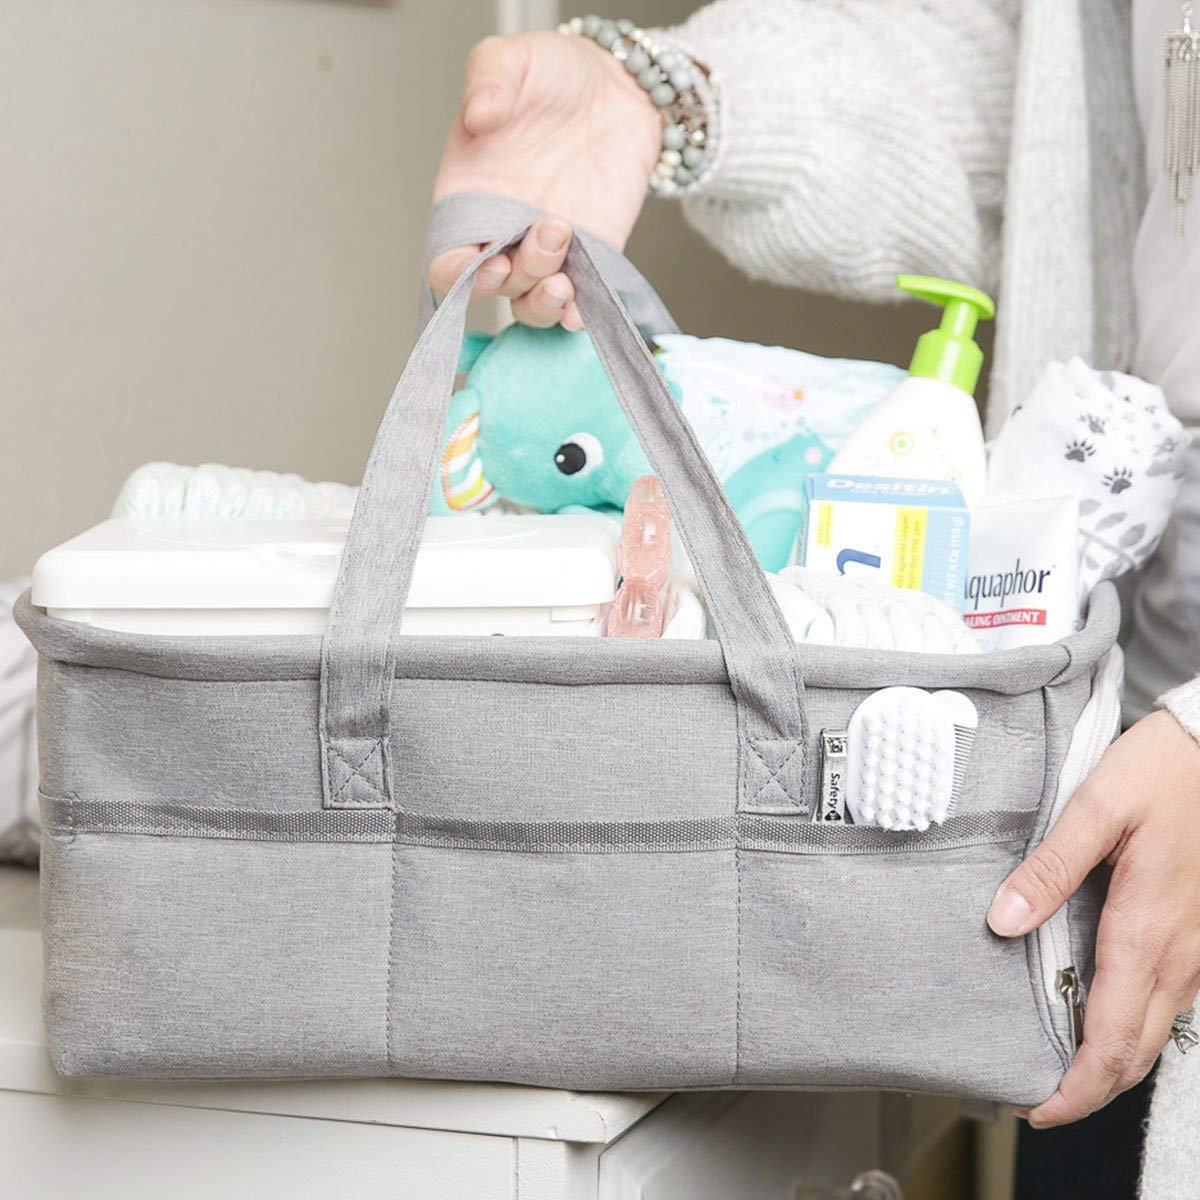 Boy or Girl Large 15x12x7 Portable Diaper Holder Basket for Nursery or Car Grey Canvas Tote Zipper Pocket 3 Insert Compartments Baby Diaper Caddy Organizer by Kids N Such Baby Shower Gift